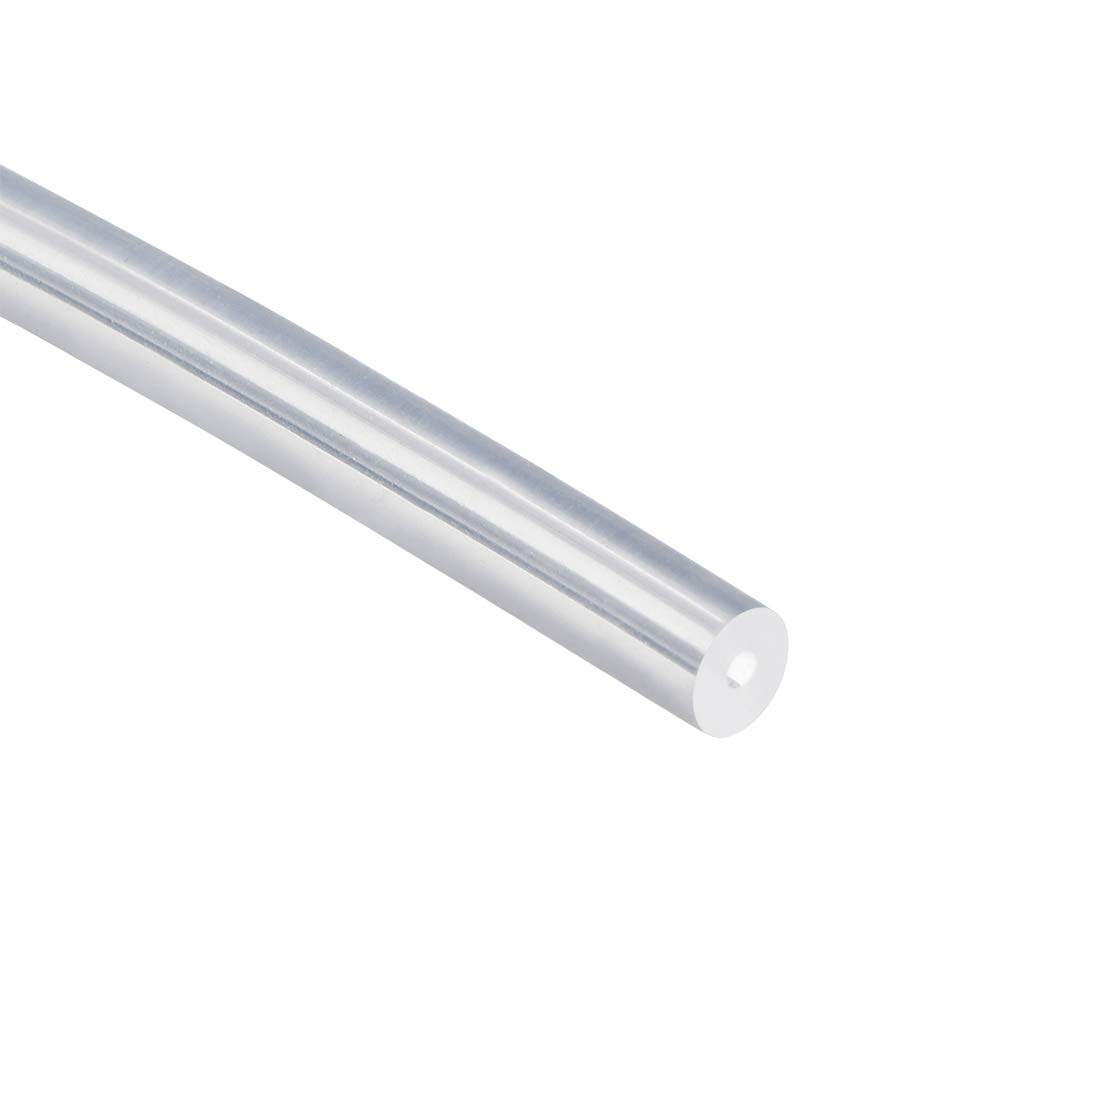 uxcell Silicone Tubing Ranking TOP4 1 32